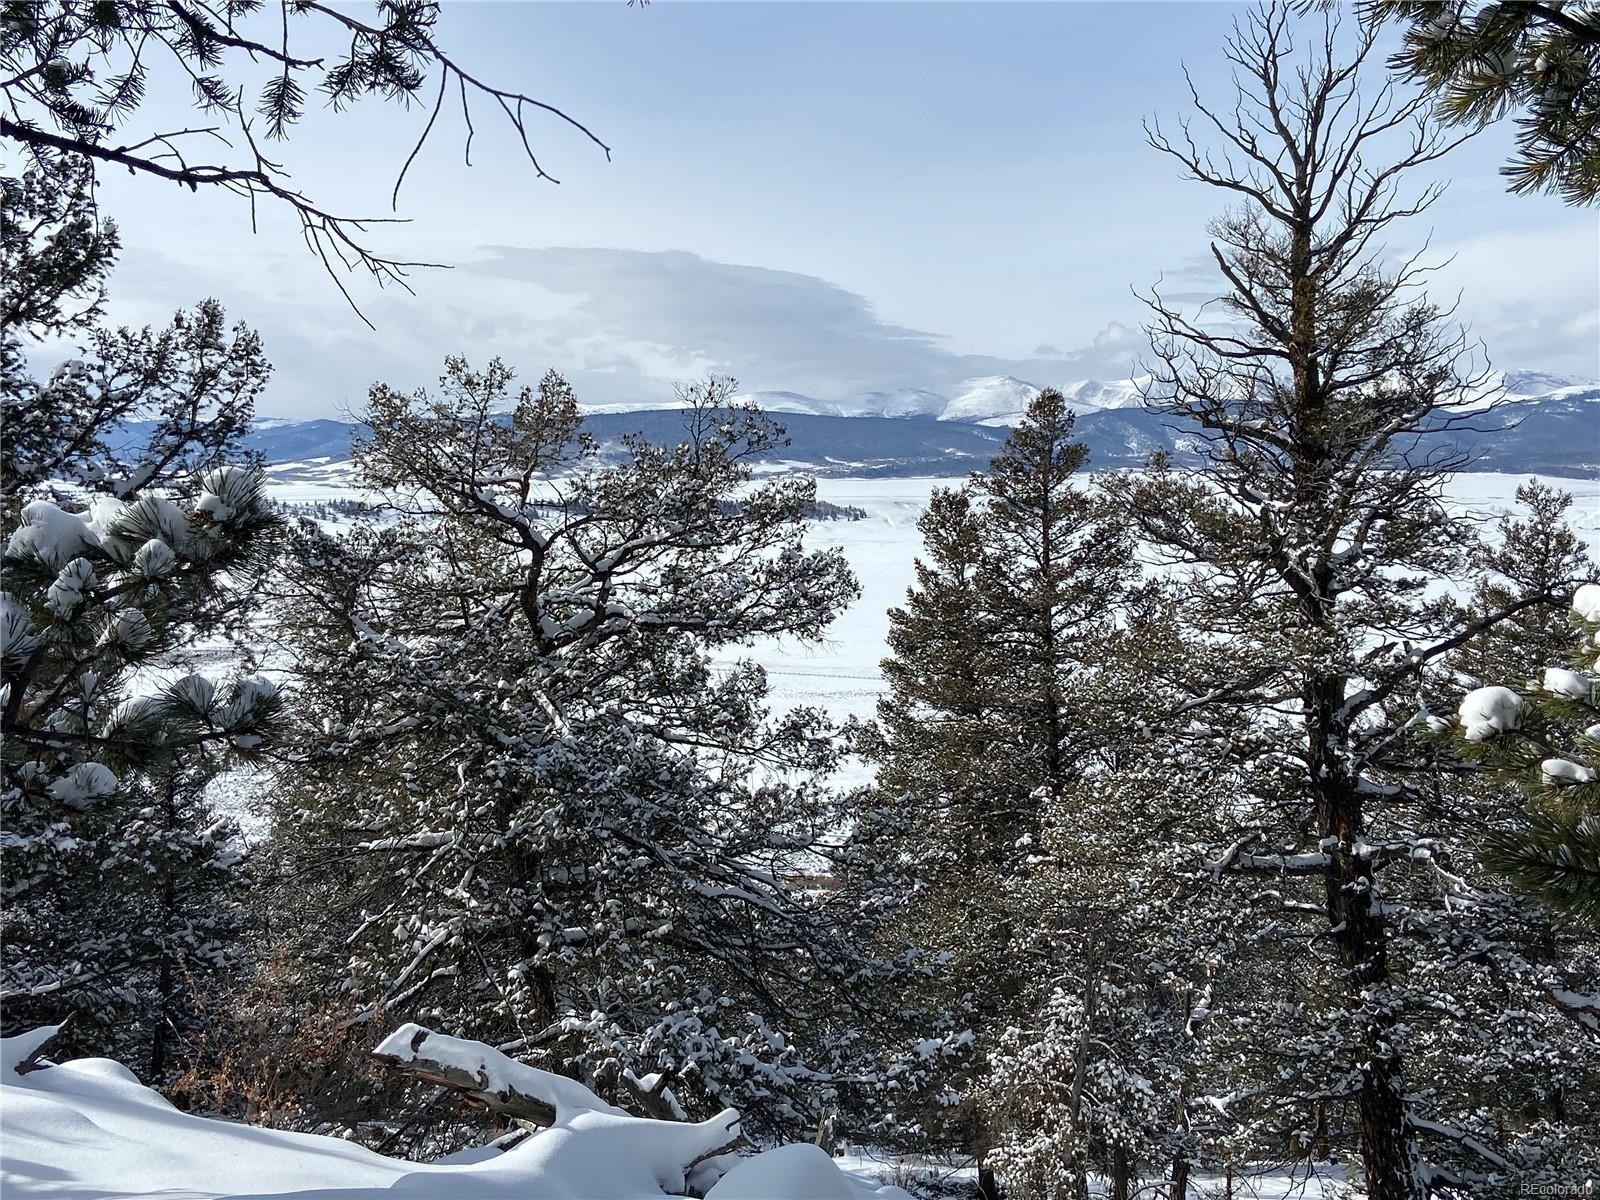 MLS# 7381339 - 1 - 2399  Middle Fork Vista, Fairplay, CO 80440